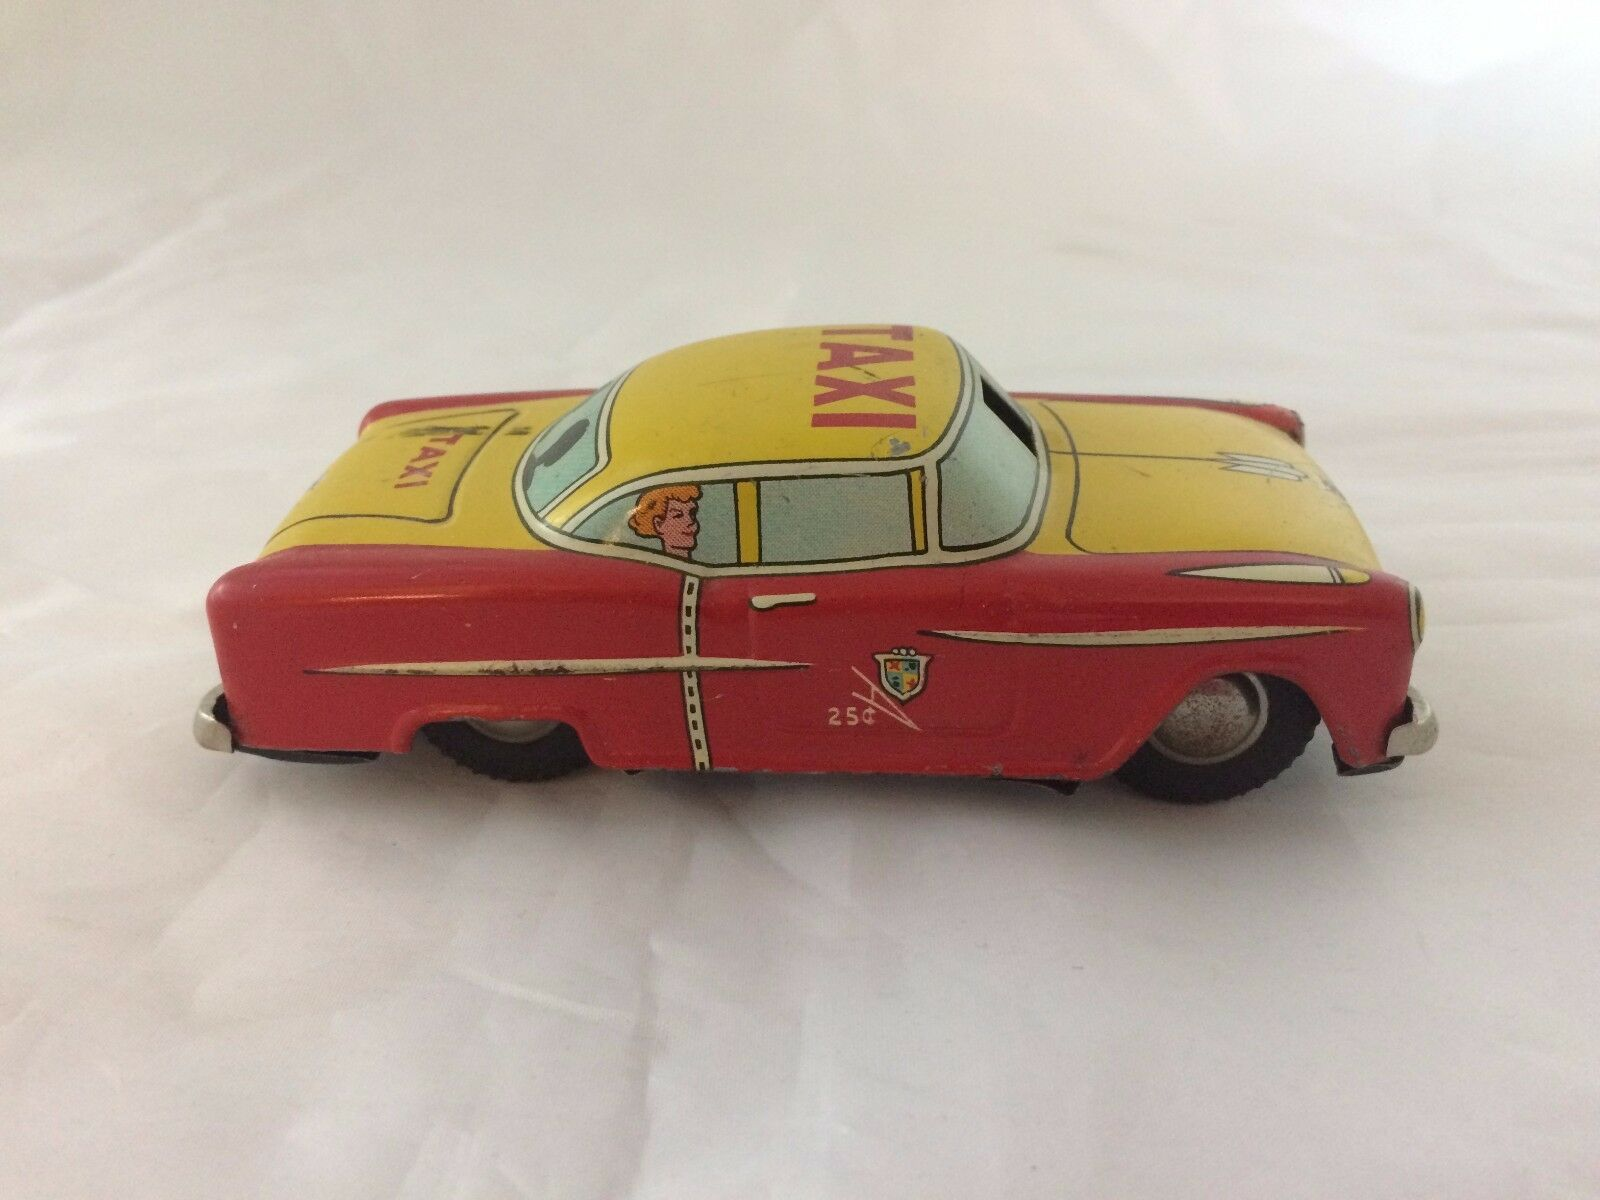 LINE MAR MAR MAR Toys Tin Litho Friction Taxi Japan 7c3d6d